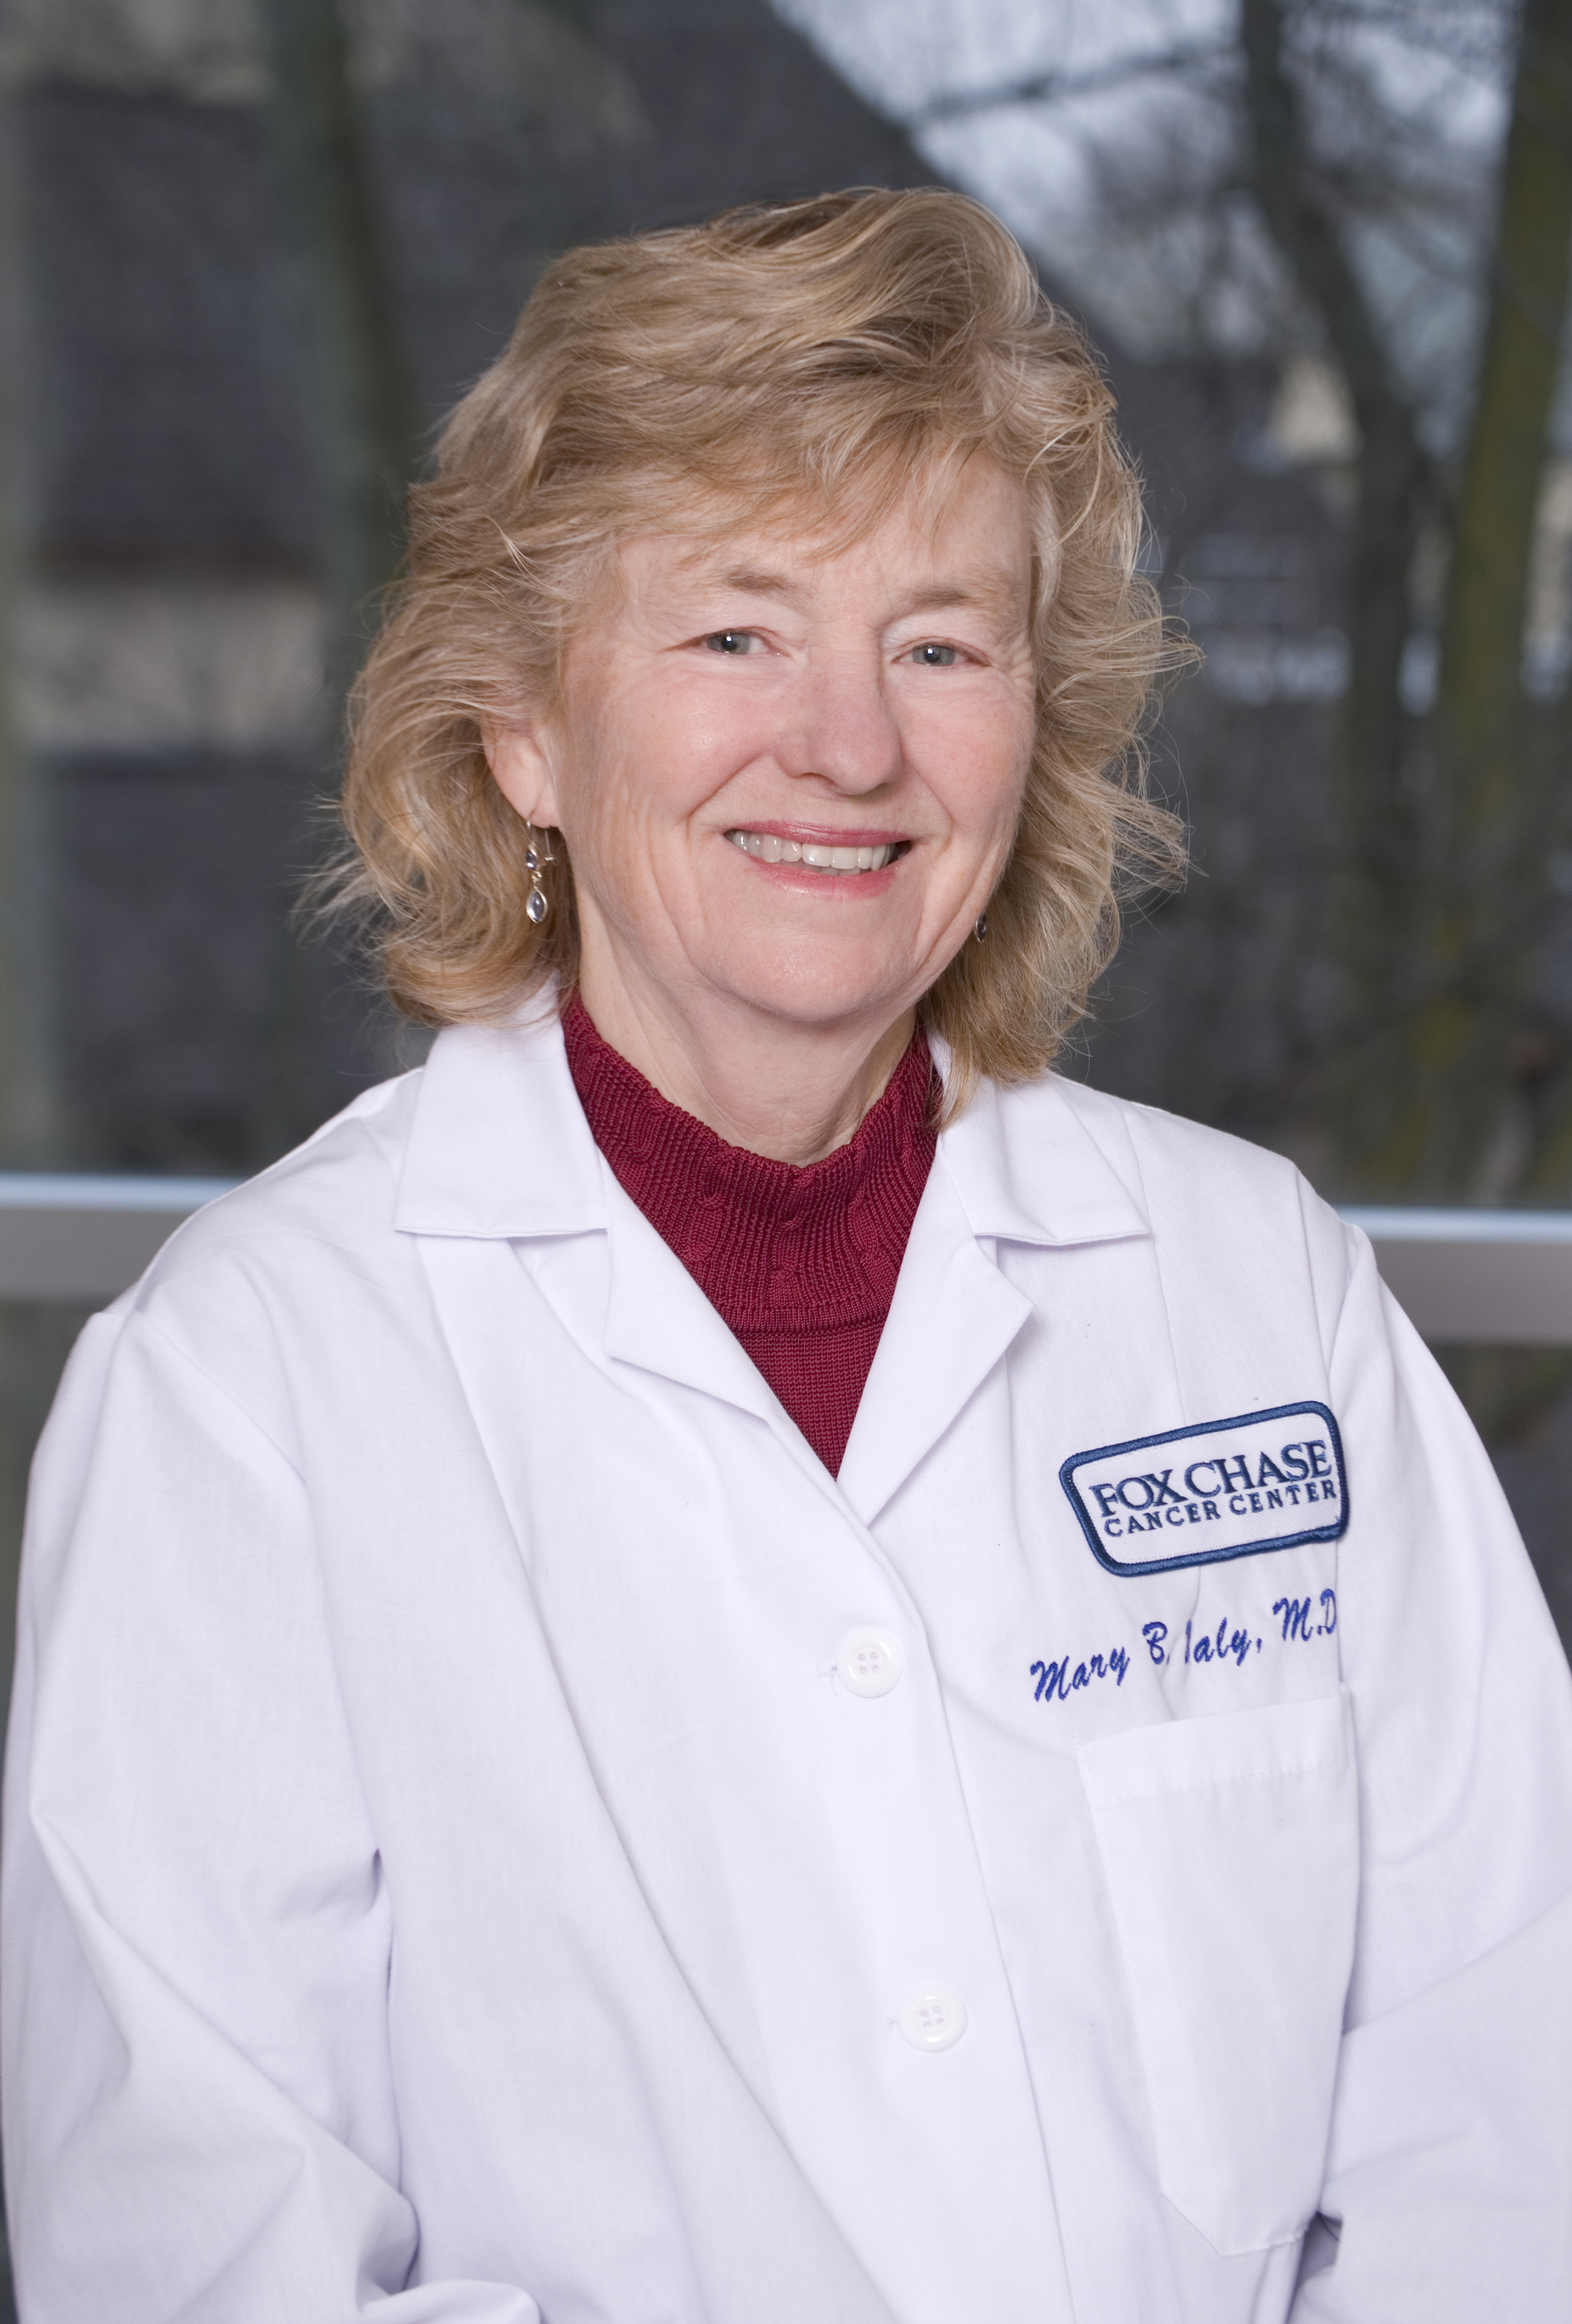 Mary B. Daly, MD, PhD, FACP, Professor in the Department of Clinical Genetics and Director of the Risk Assessment Program at Fox Chase Cancer Center